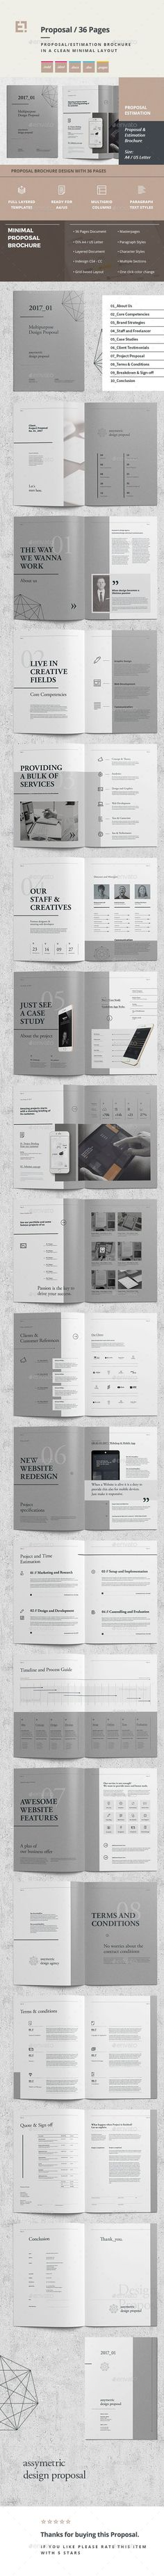 Product Sales Proposal Template 9 Best Business Proposal Ideas Images On Pinterest  Graph Design .